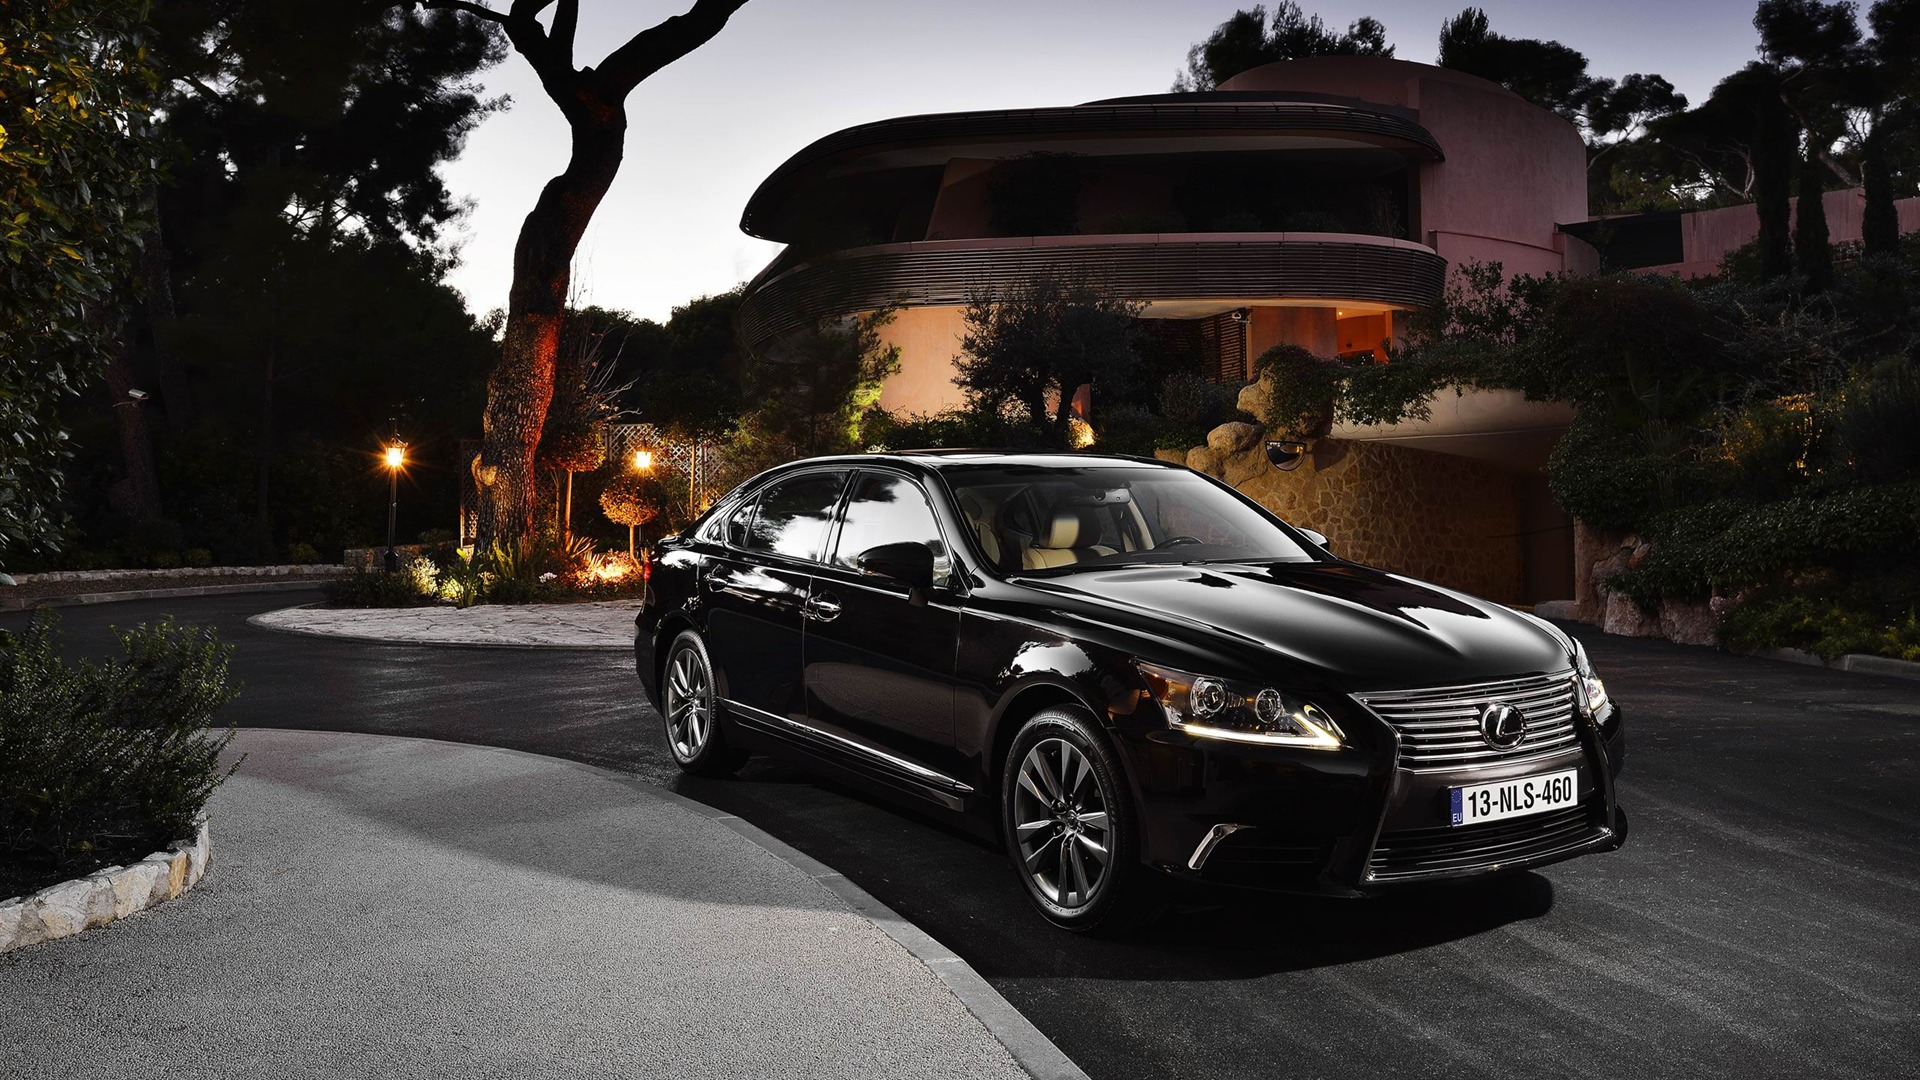 2019 Lexus LS EU Version photo - 2